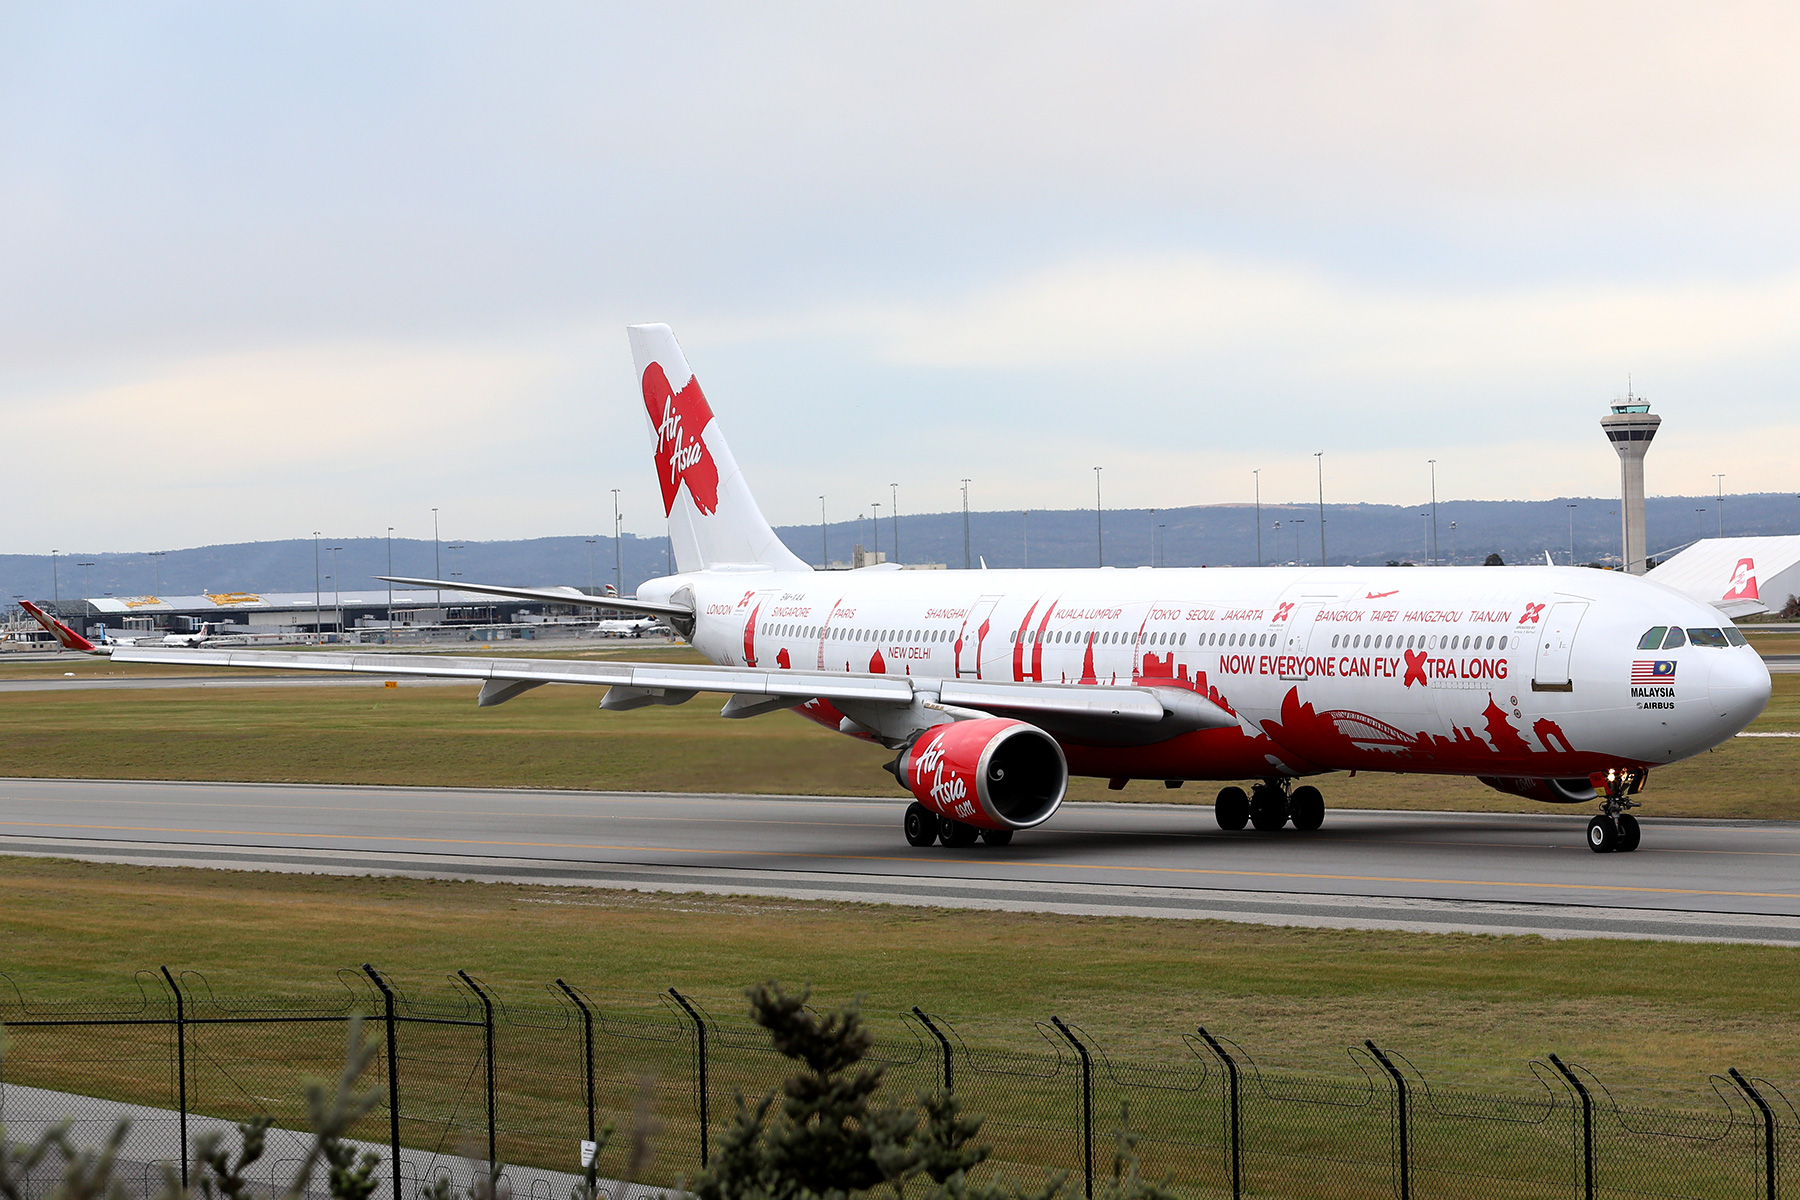 9M-XAA Airbus A330-301 (MSN 054) of AirAsia X, in World Cities special livery, named 'Semangat Sir Freddie', at Perth Airport – Fri 18 July 2014.